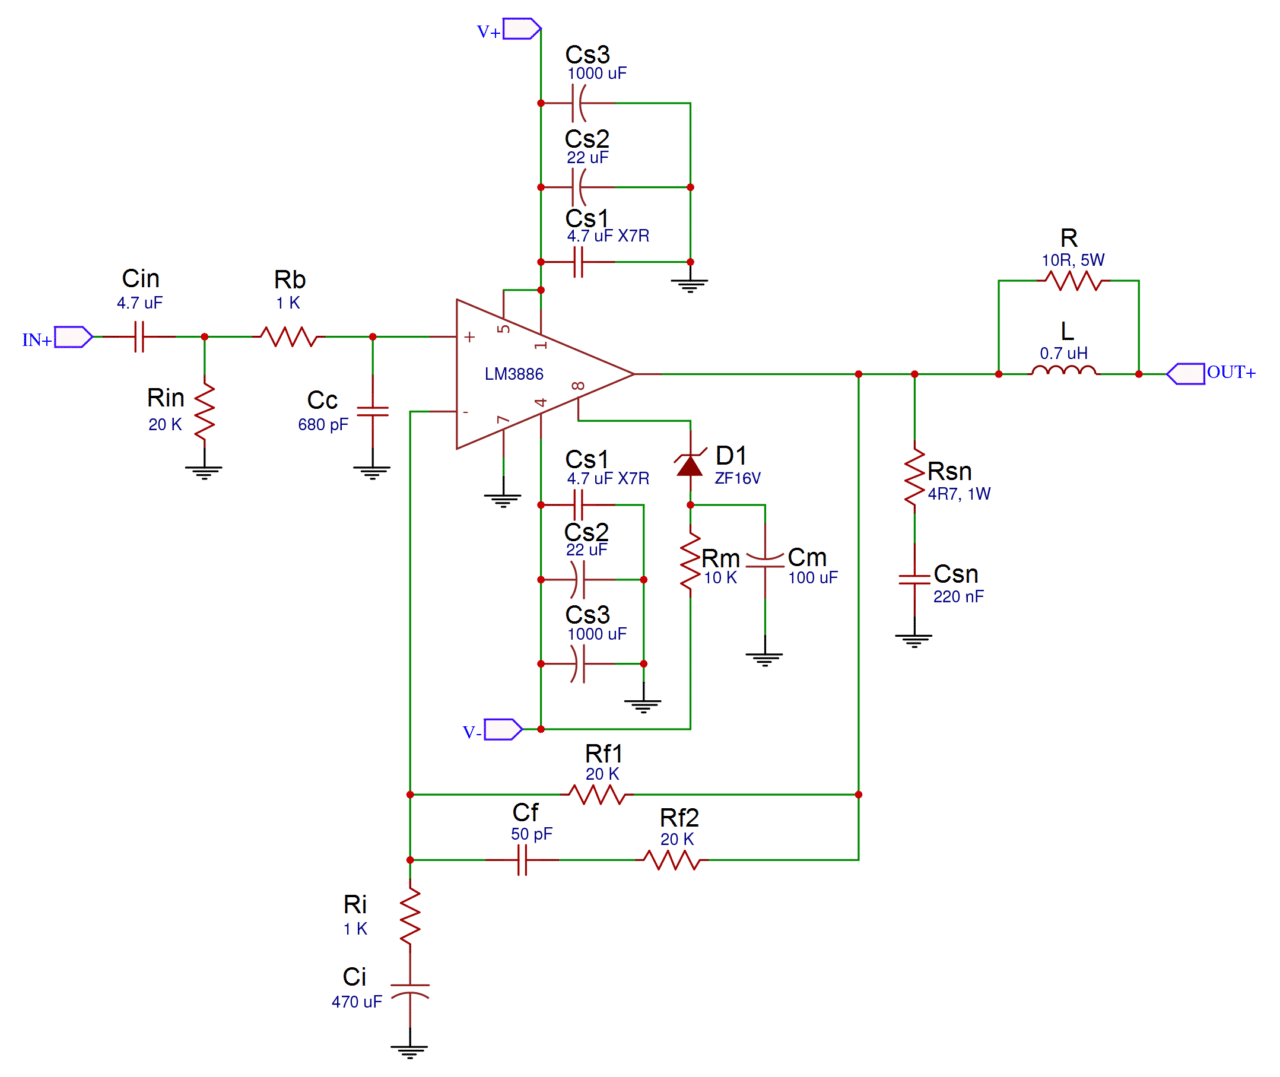 A Complete Guide To Design And Build Hi Fi Lm3886 Amplifier 20 Ma Current Loop Measuring Circuits Basics I Industrial Find Values For The Components In Circuit Ill Be Using Schematic Below Its Basically Same As One Datasheet